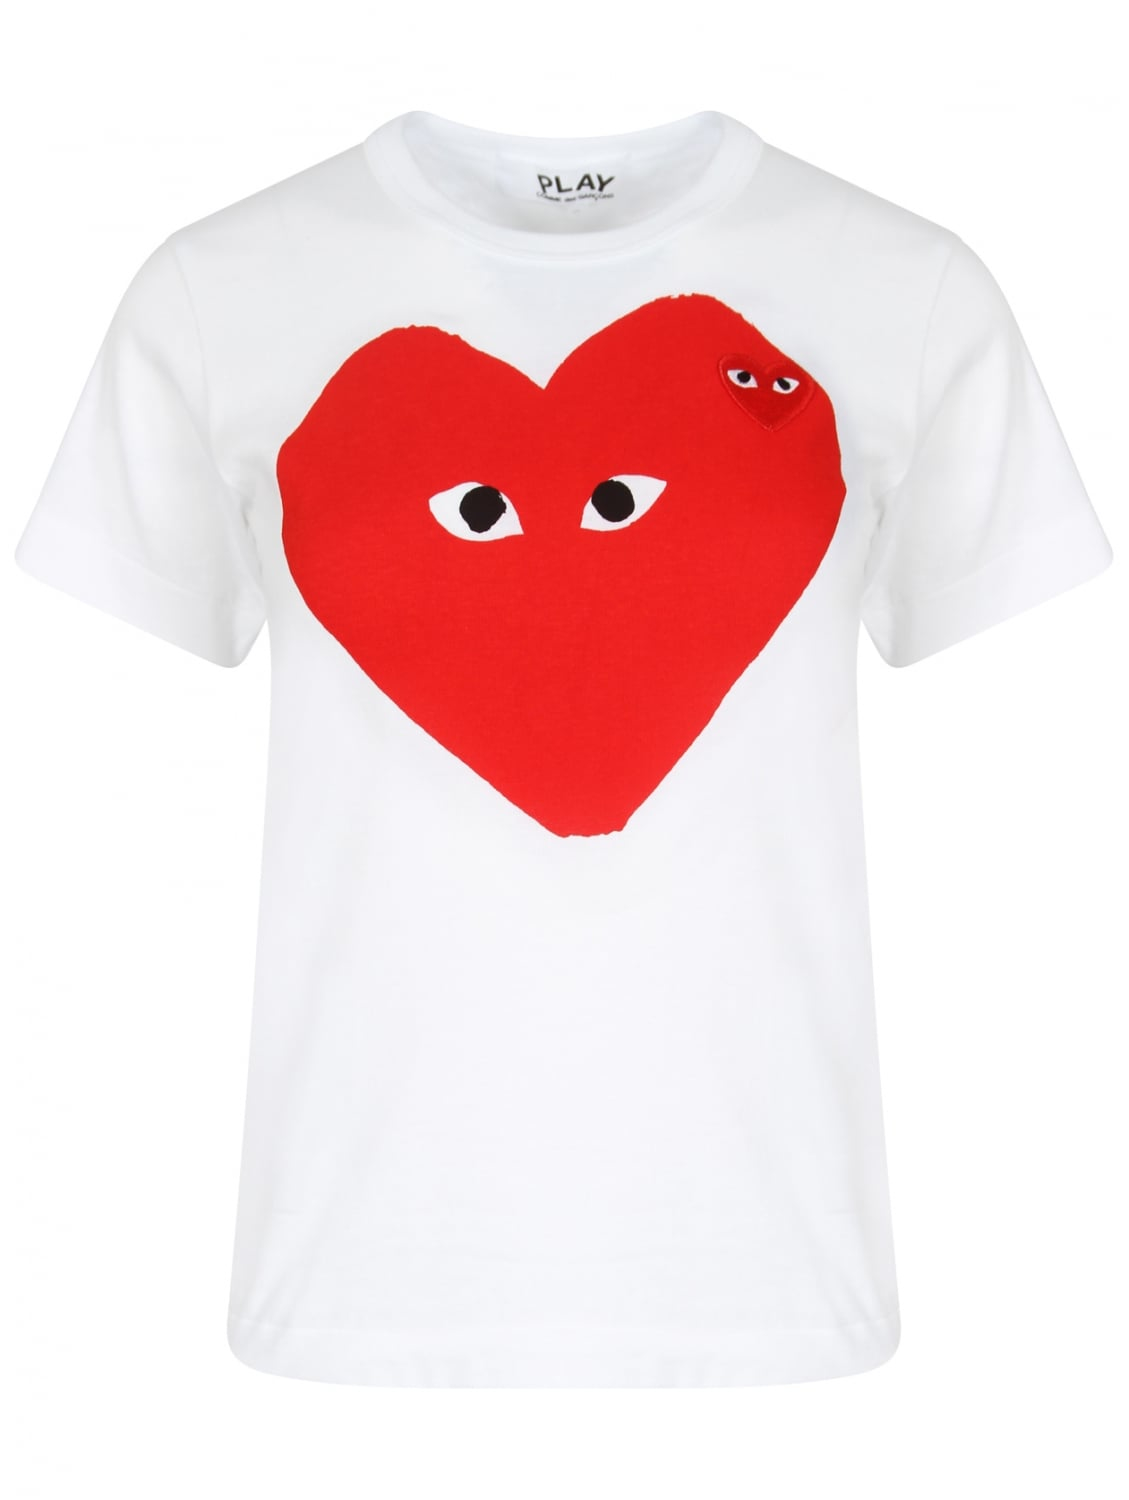 Comme des garçons Play Women's Big Red Heart T-shirt White in Red   Lyst